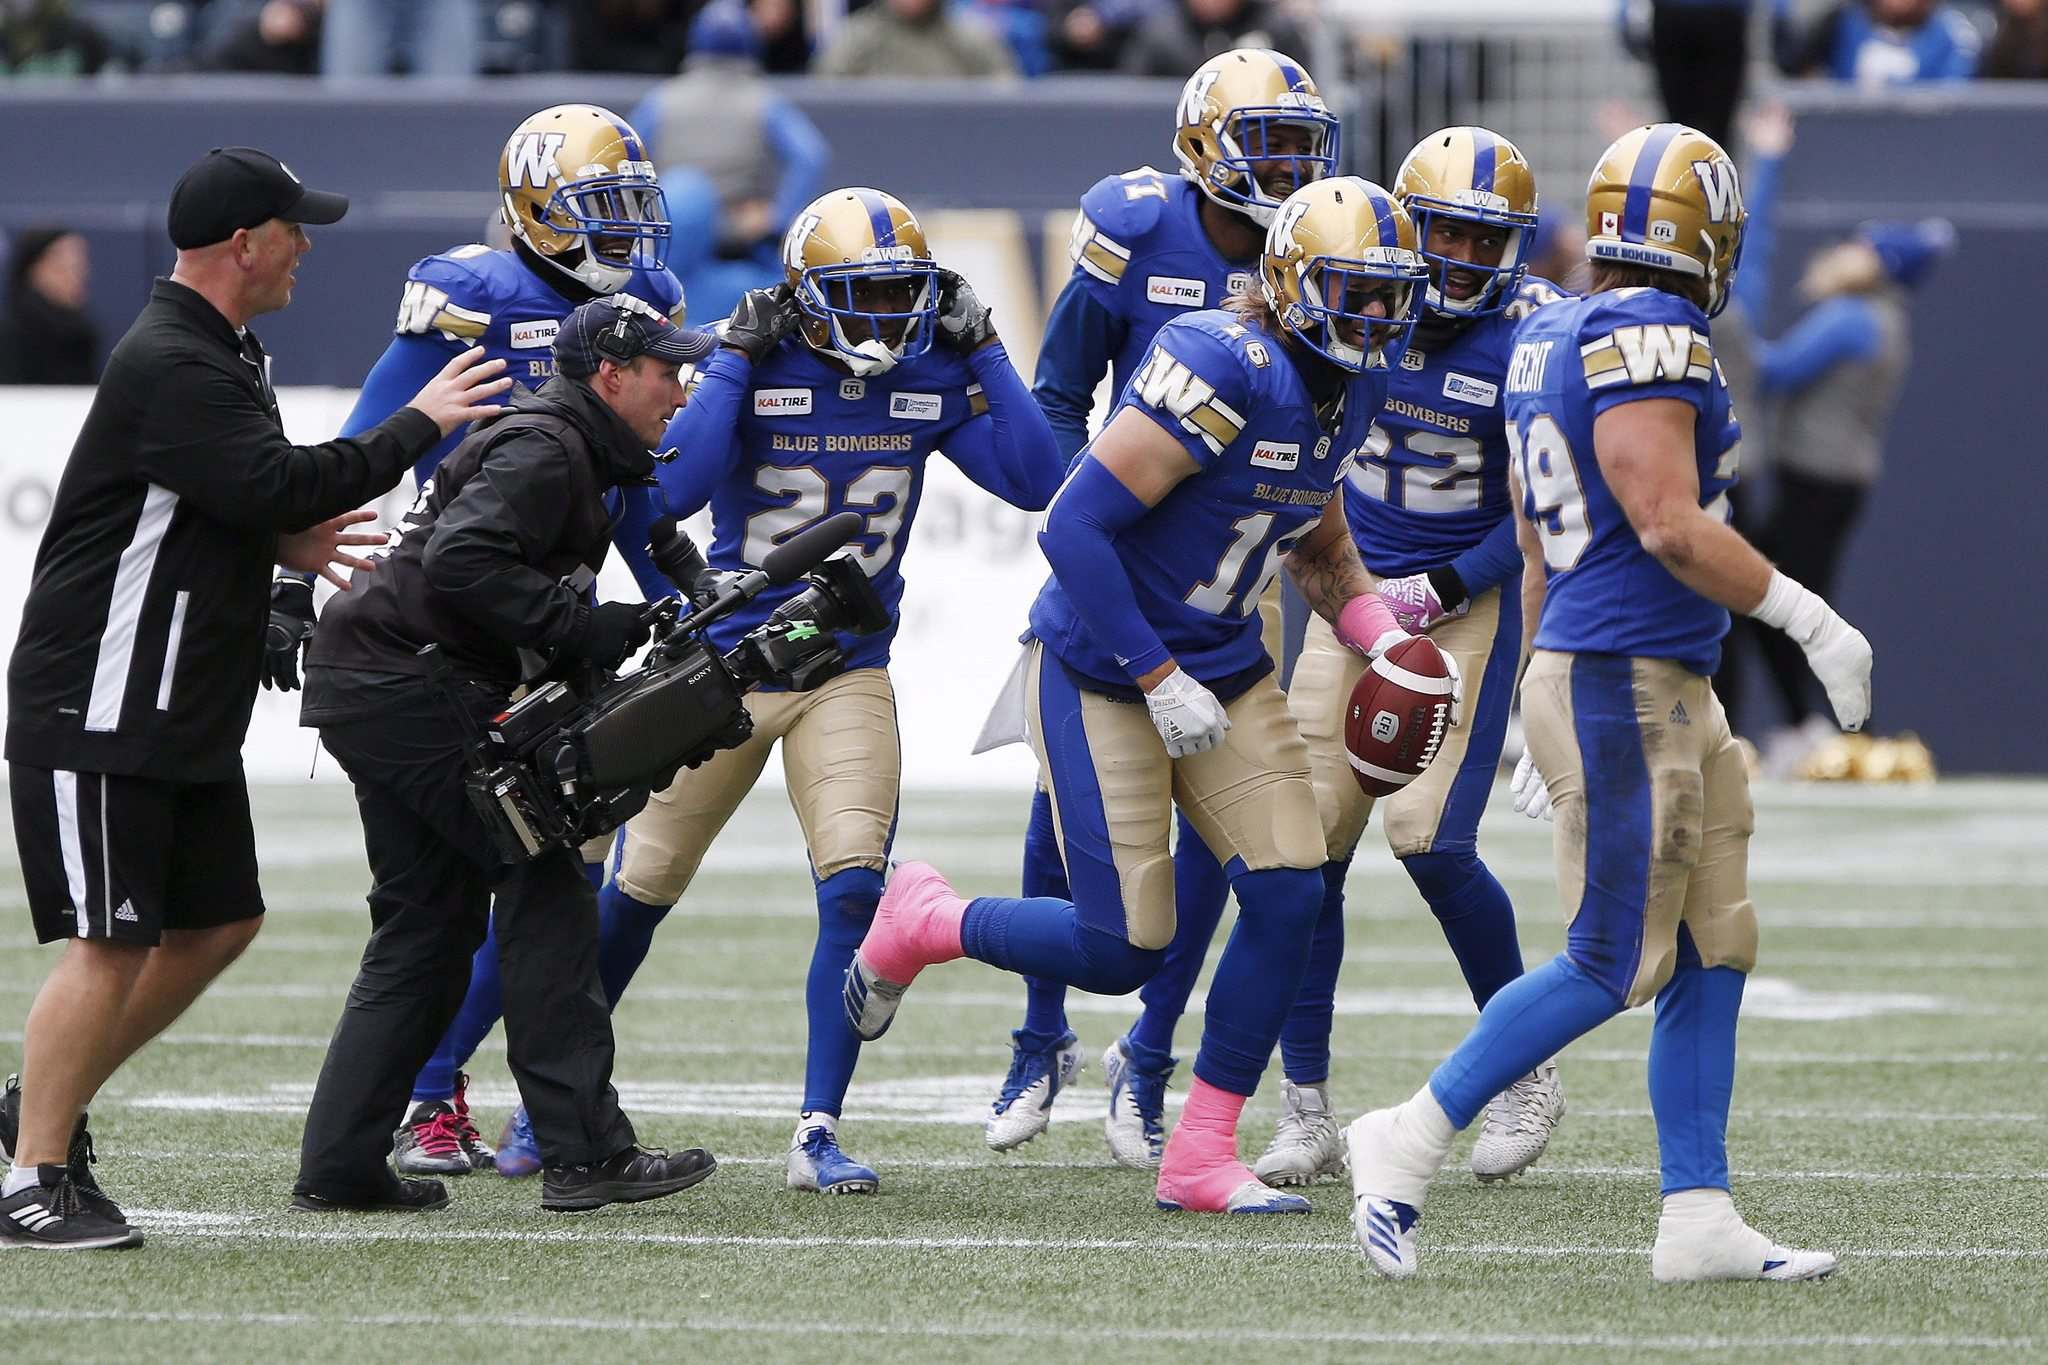 JOHN WOODS / THE CANADIAN PRESS</p><p>The Blue Bombers celebrates Taylor Loffler&#39;s interception during Saturday&#39;s game against the Roughriders.</p>